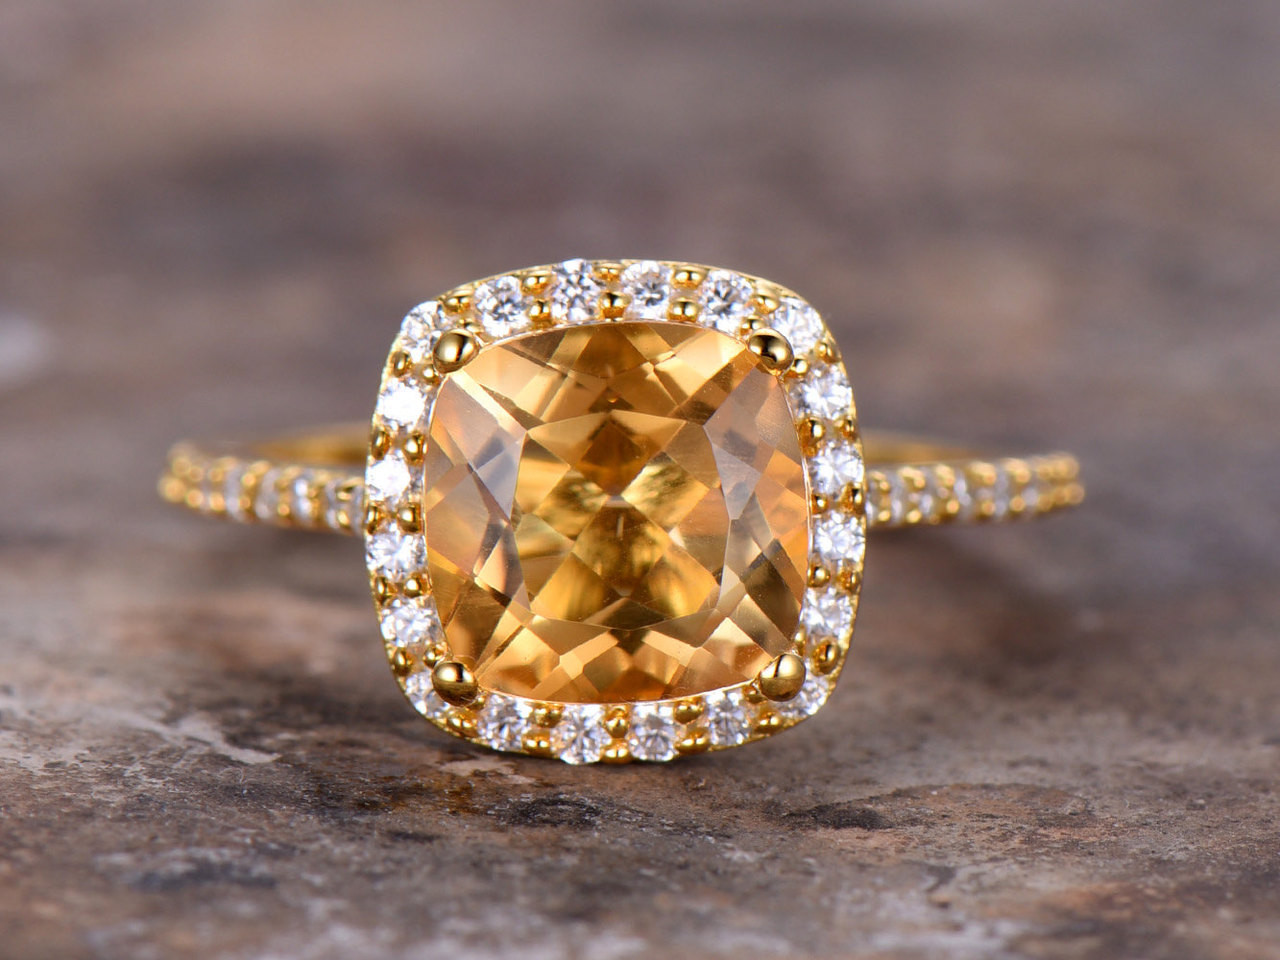 8mm Cushion Cut Citrine Engagement Ring Yellow Gold Plated 925